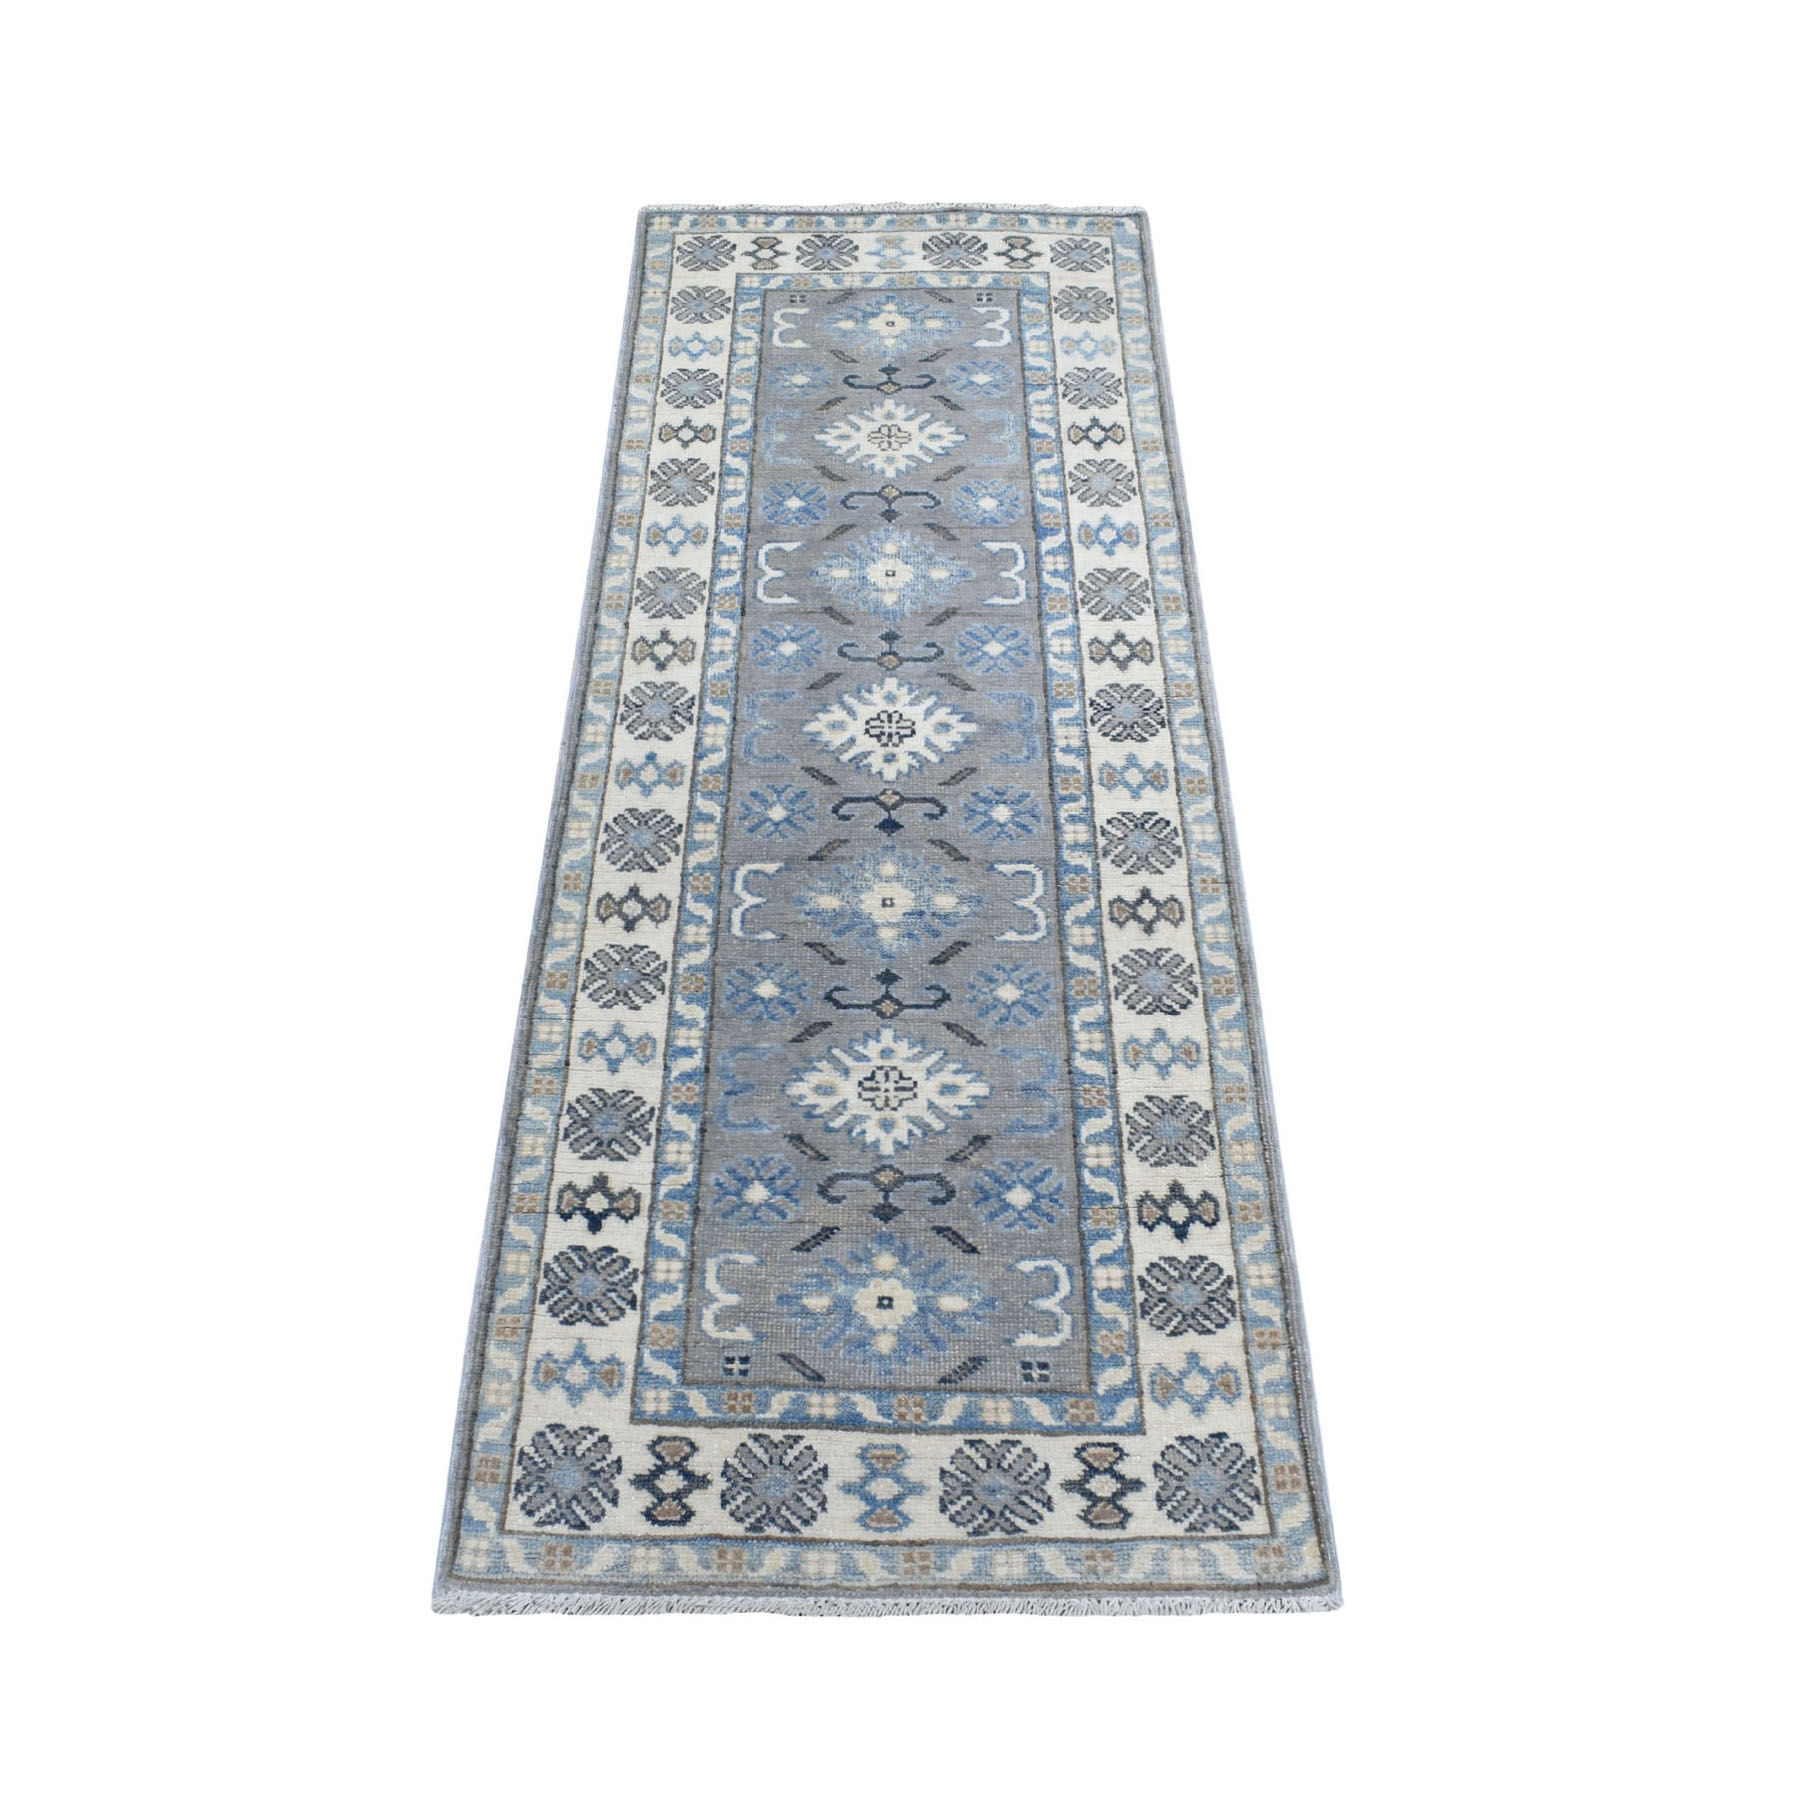 "2'x5'6"" Gray Hand Knotted Vintage Look Kazak Organic Wool Tribal Design Narrow Runner Oriental Rug"